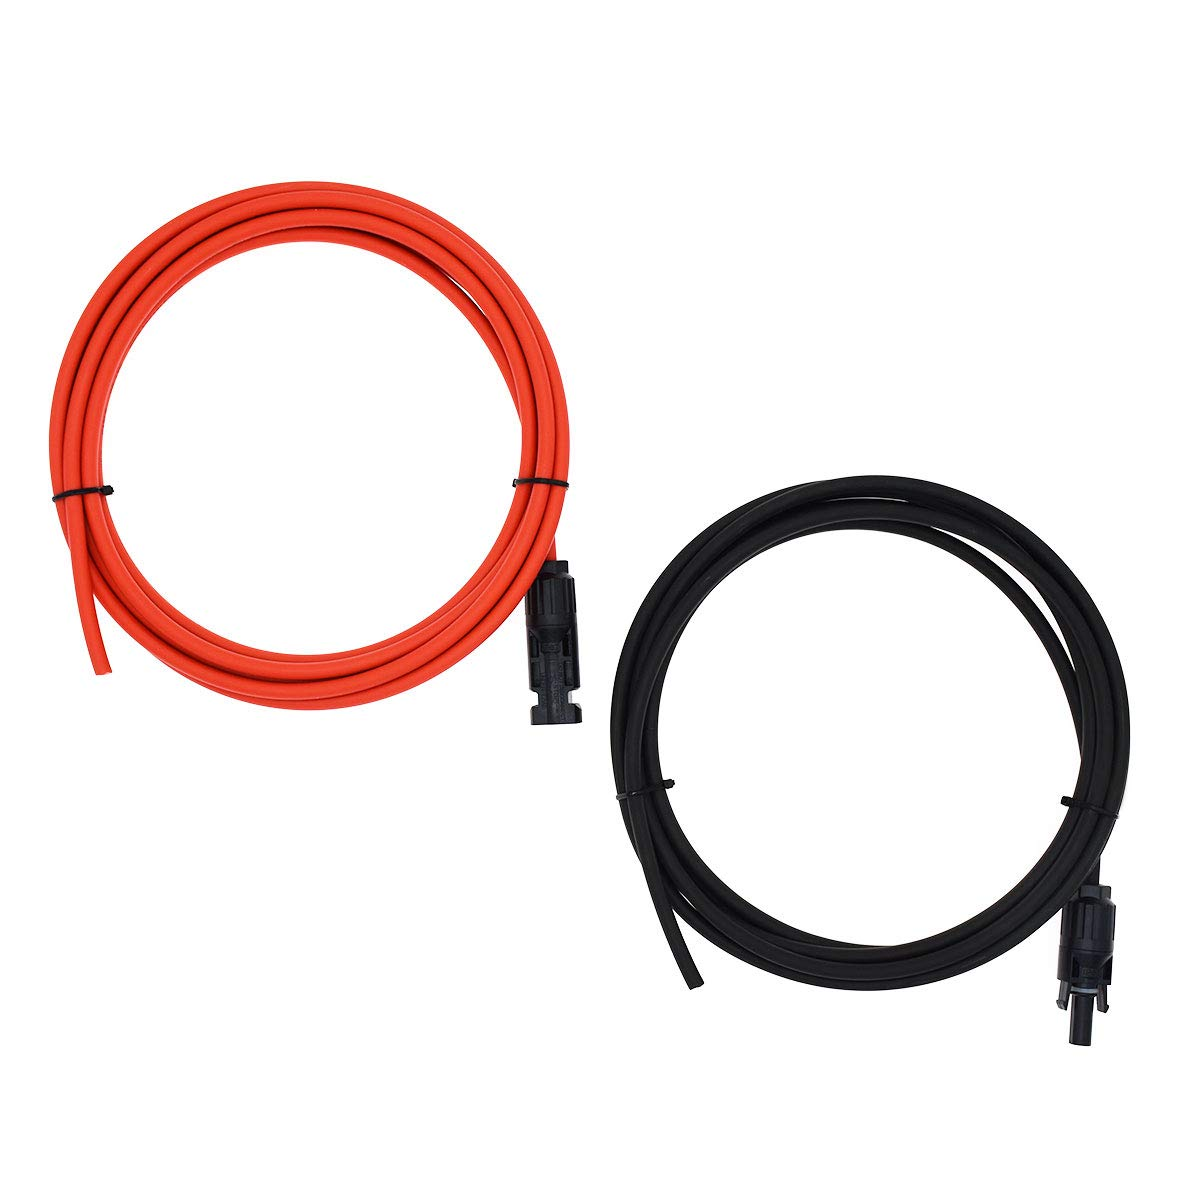 1 Pair Black + Red 12AWG(4mm²) Solar Cable MC4 Solar Adaptor Cable Solar Panel Extension Cable Wire MC4 Connector Solar Extension Cable with MC4 Female and Male Connectors (10FT-1D)